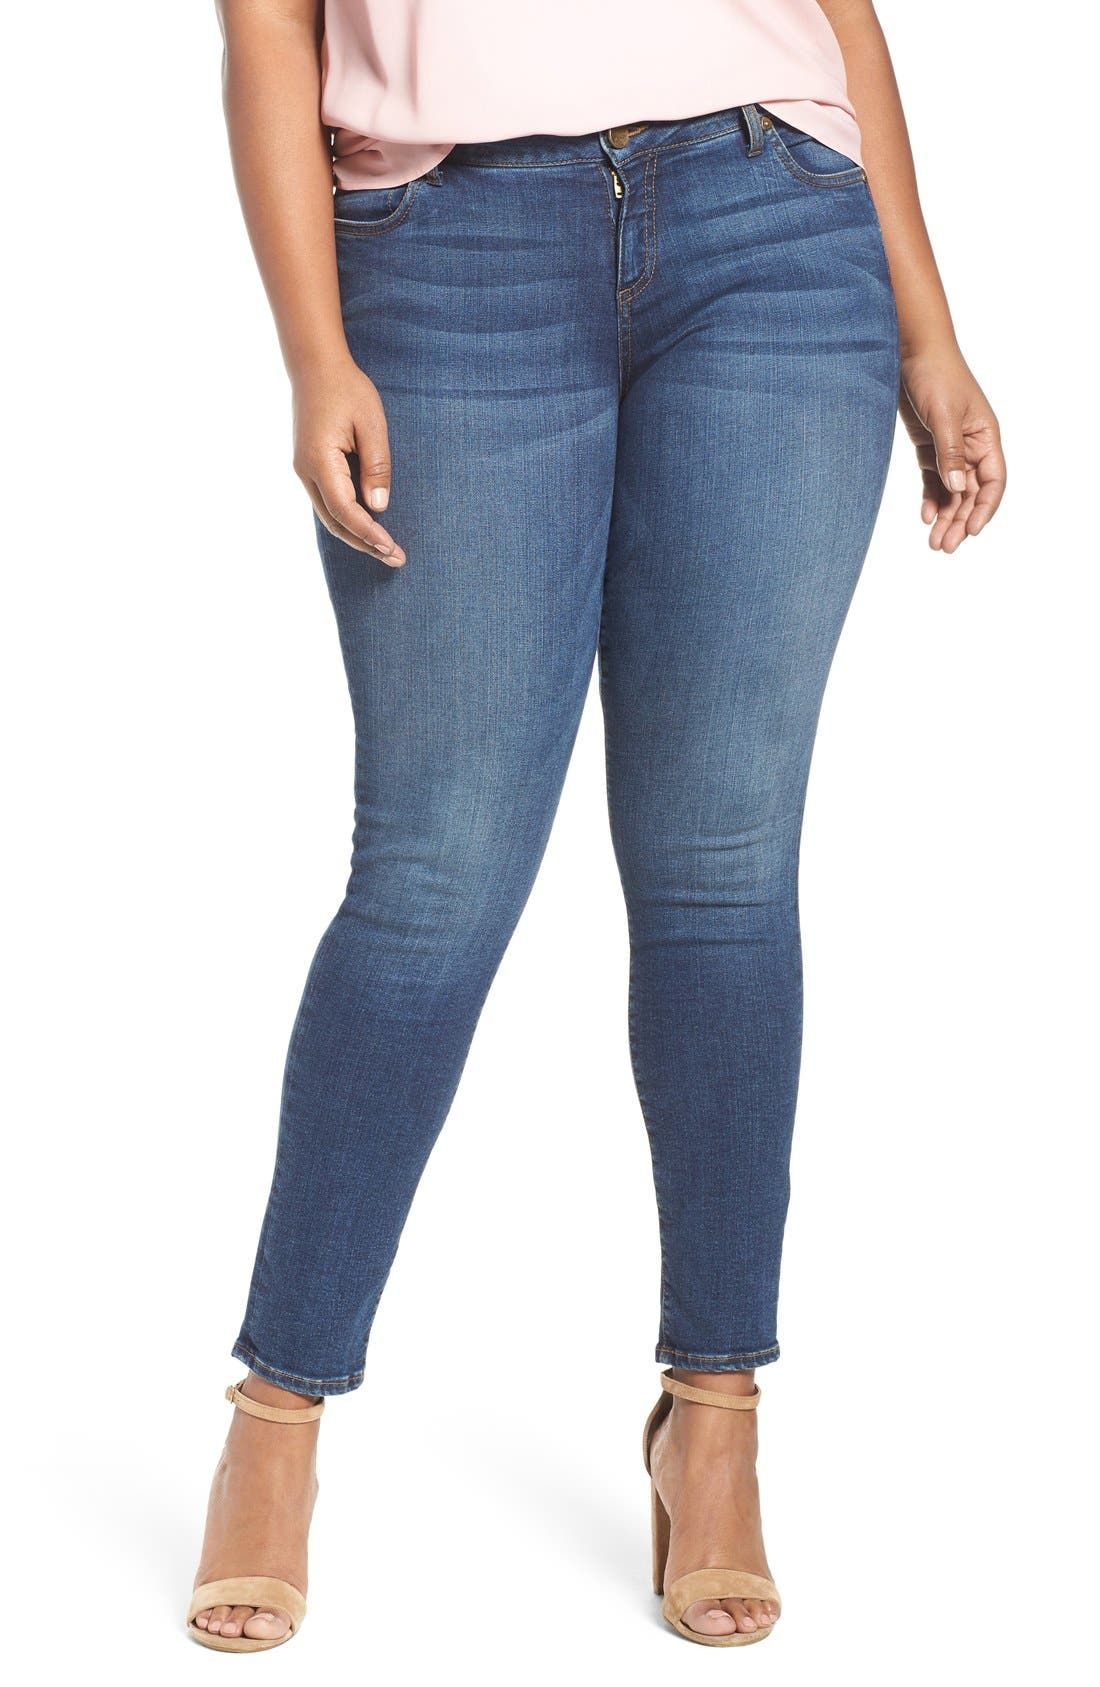 Plus Size Kut From The Kloth Mia Toothpick Stretch Skinny Jeans